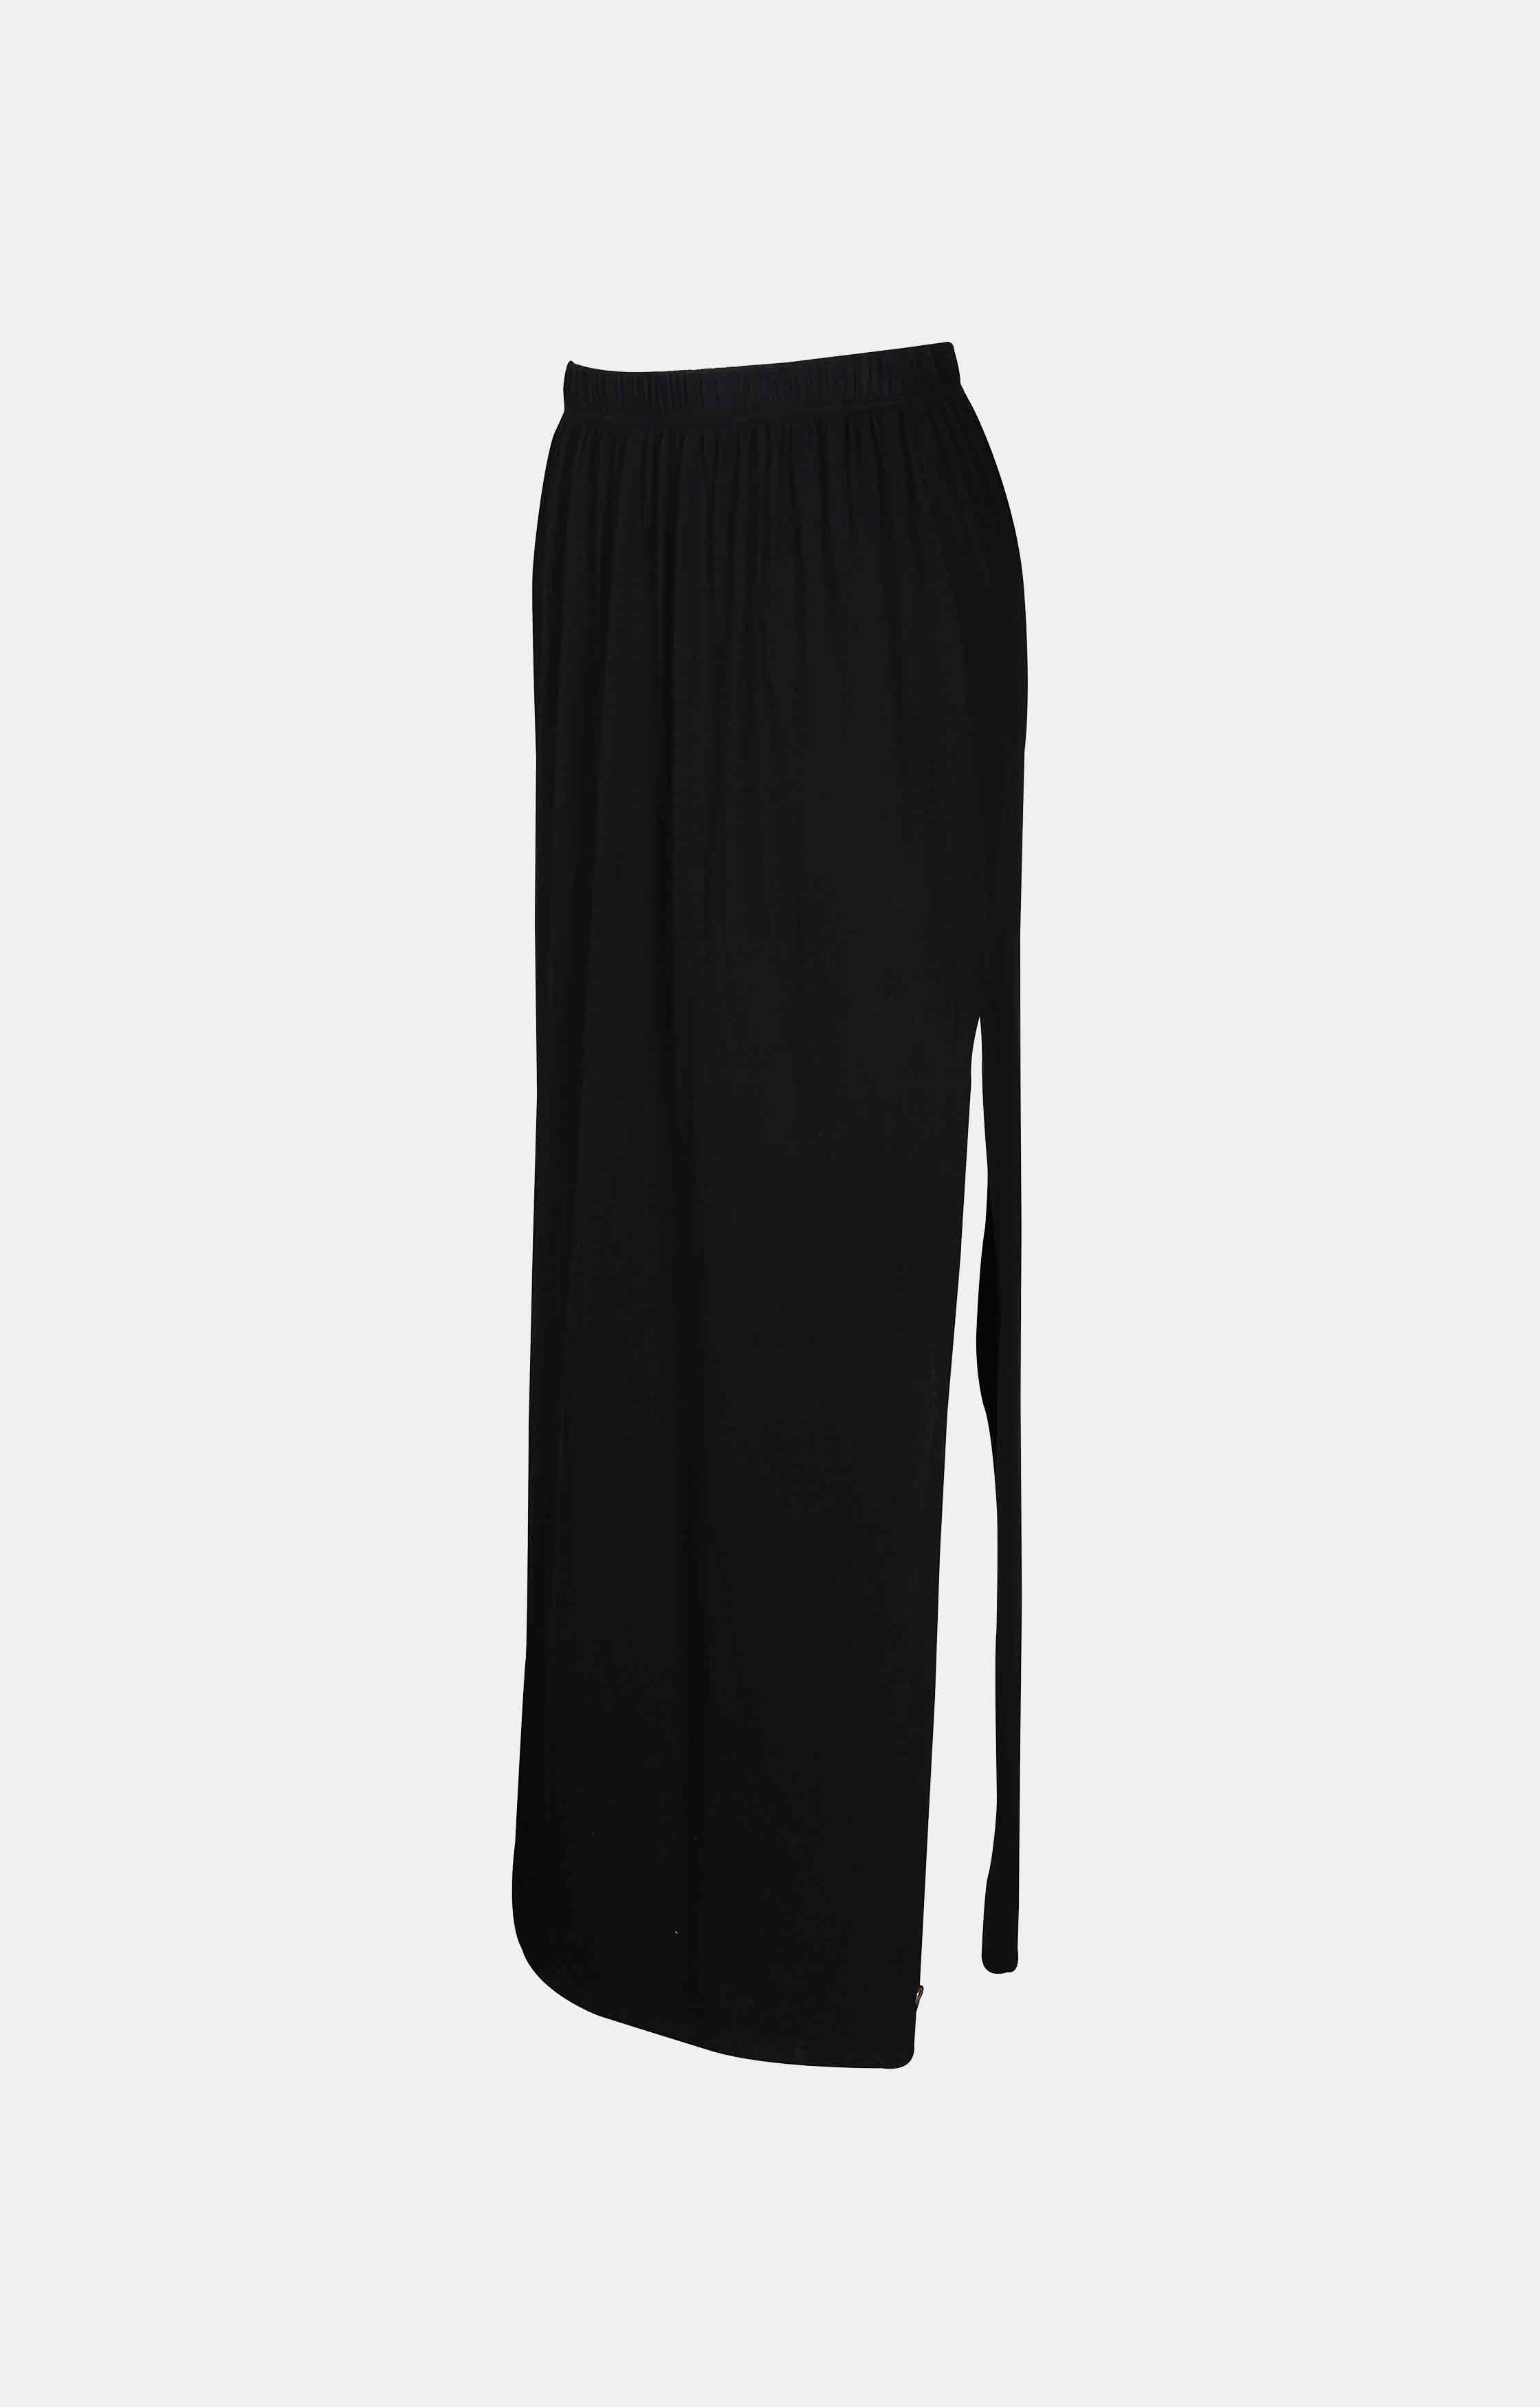 Pepe Jeans | Black Solid Straight Skirts